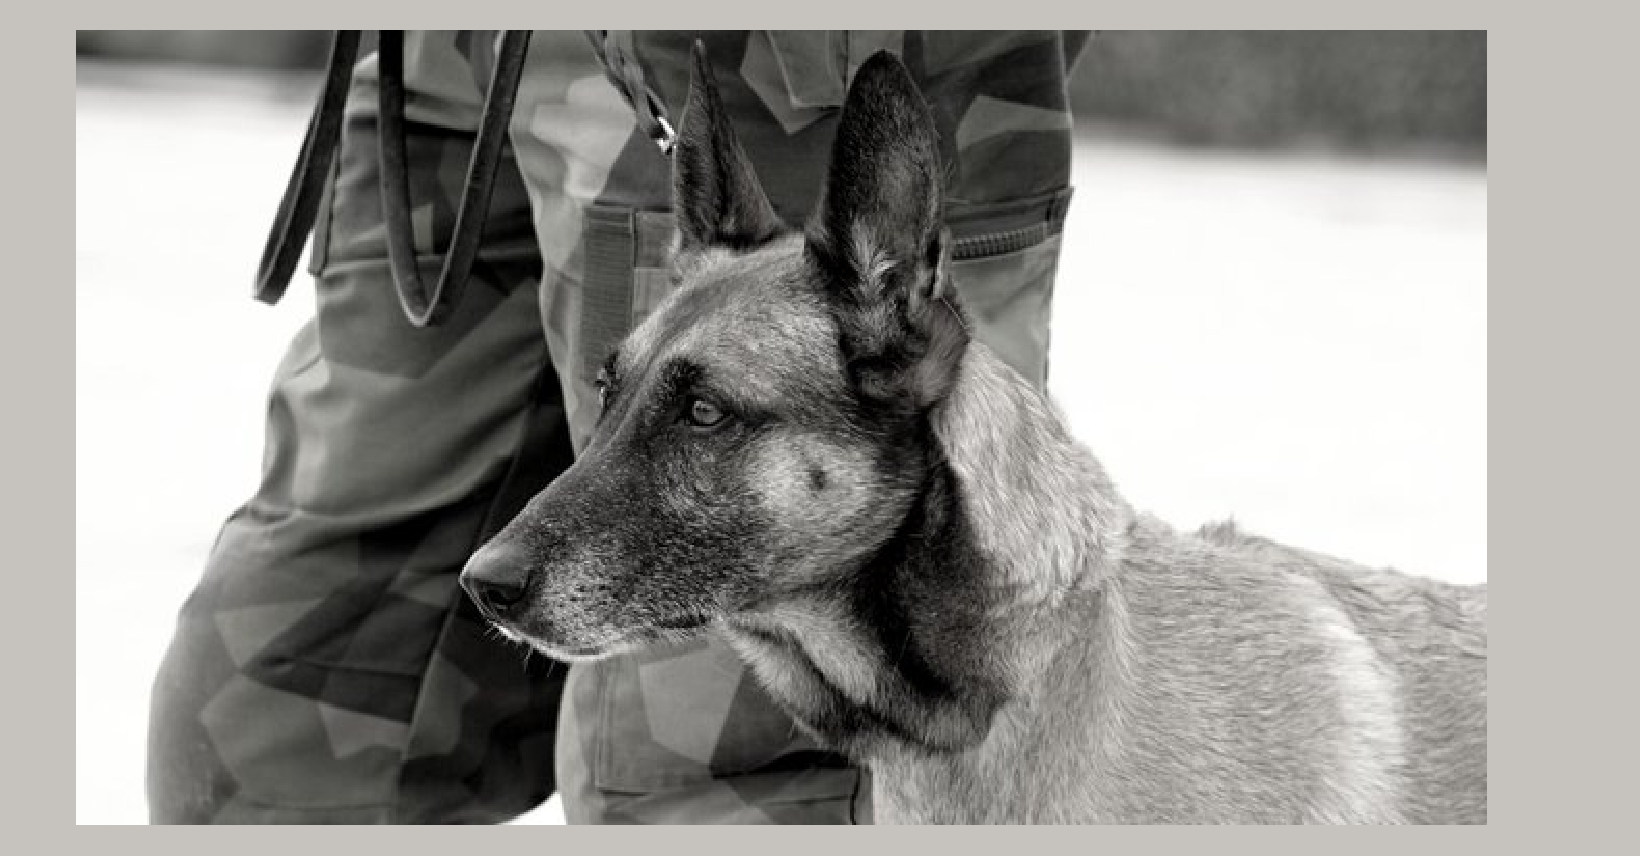 Contract K-9 soldiers left behind in Kabul